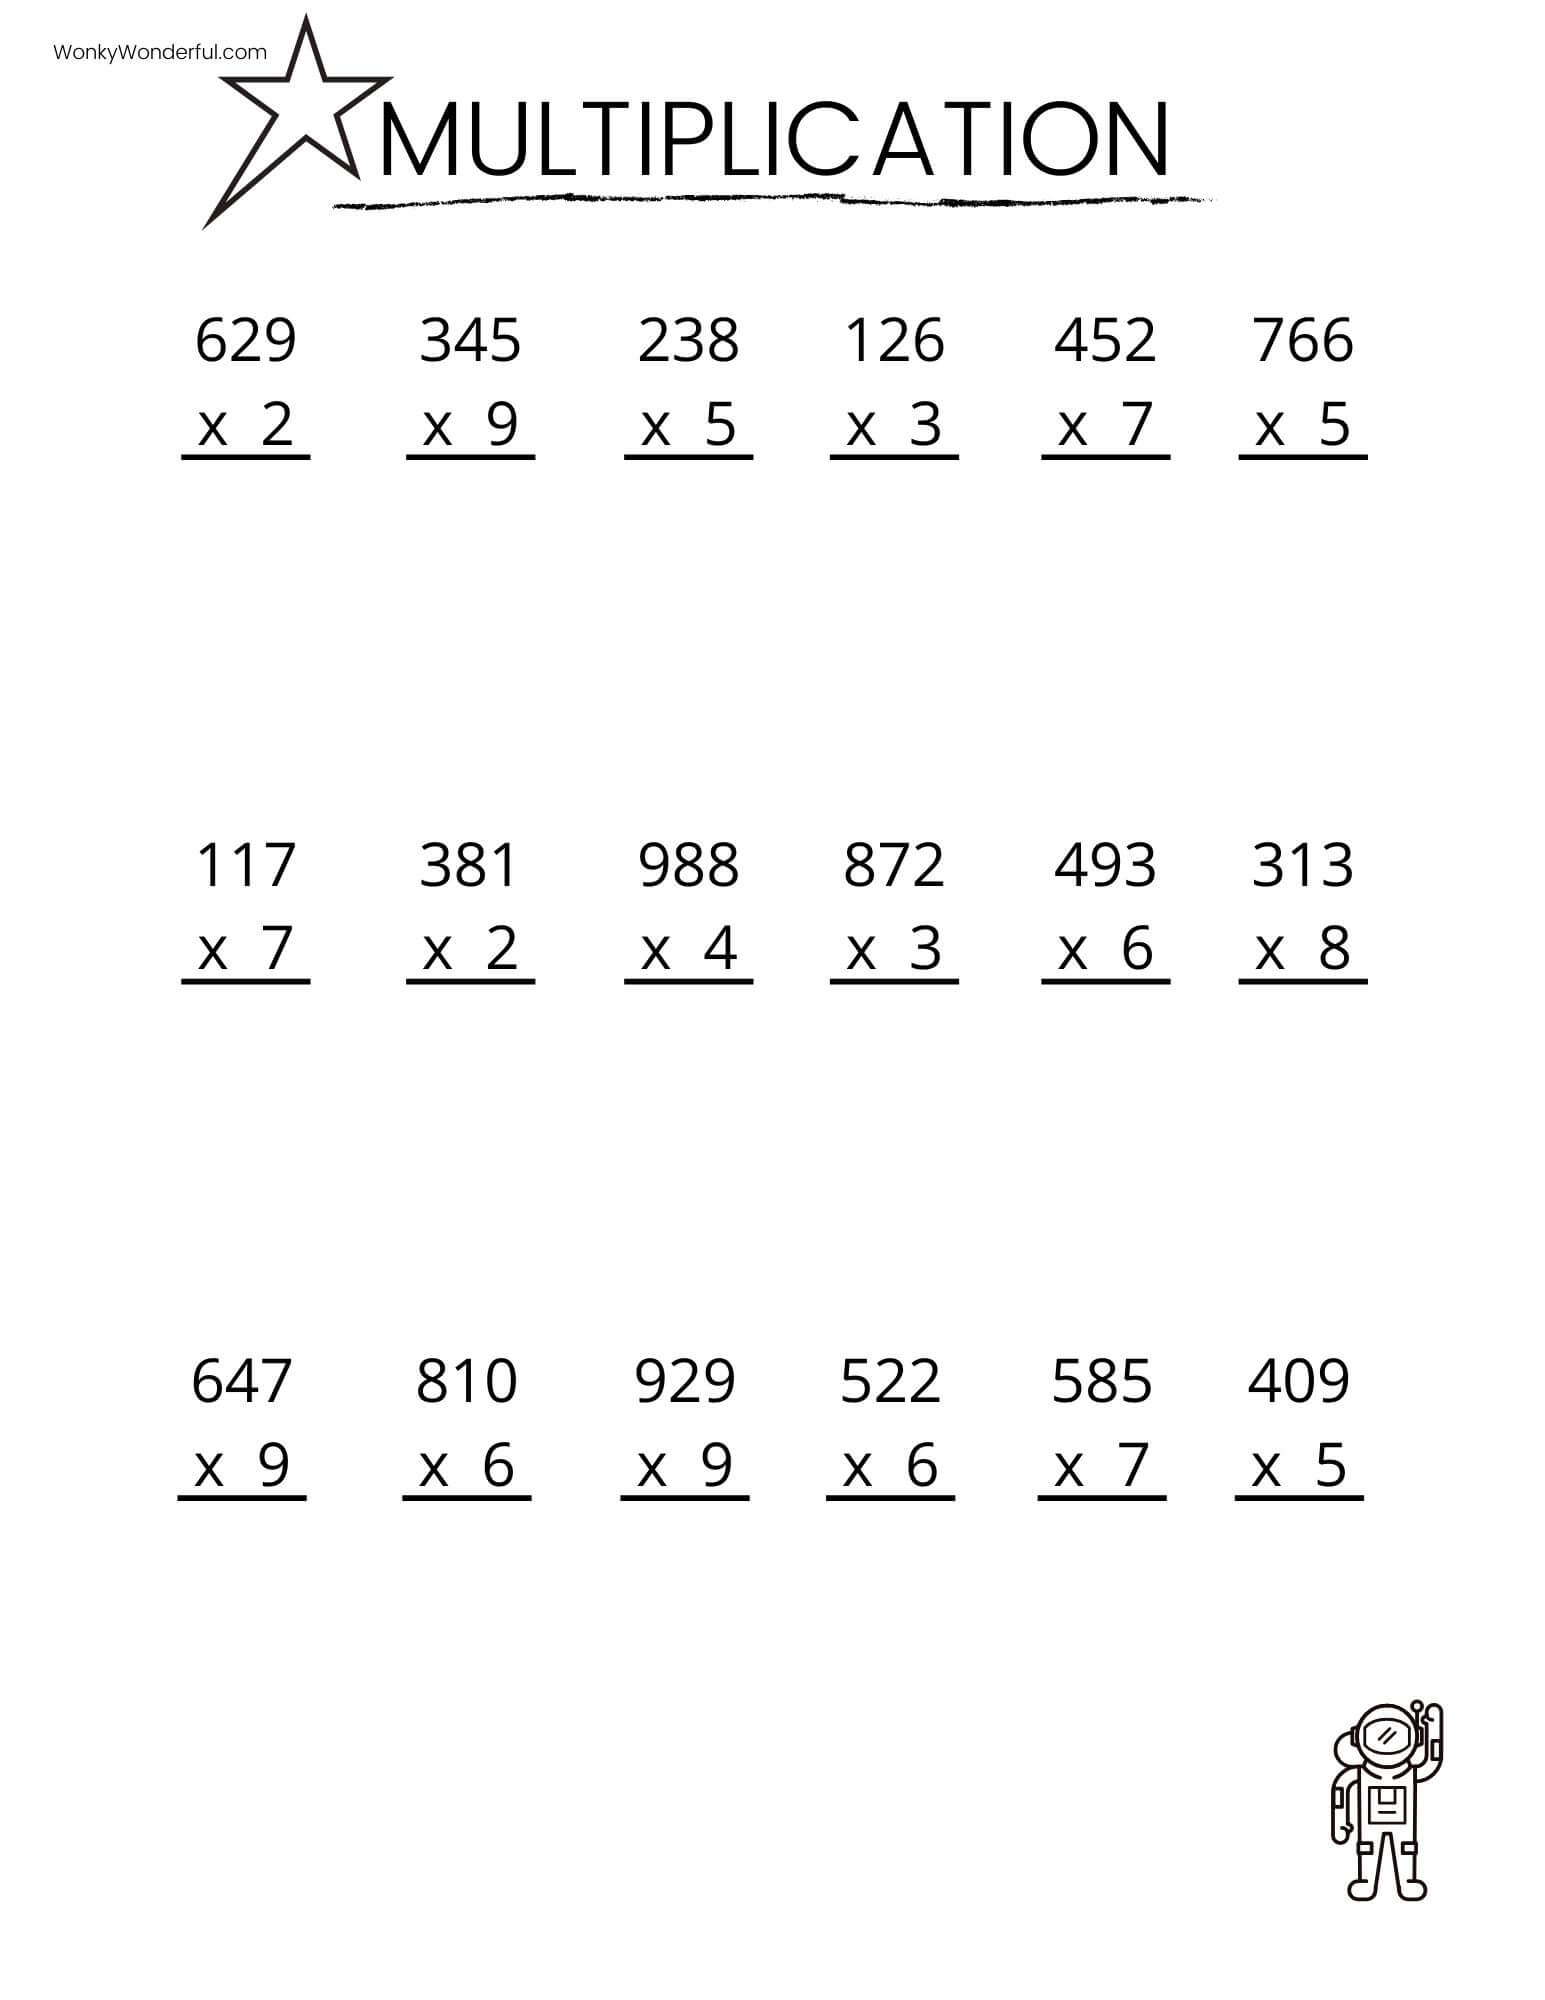 hight resolution of FREE PRINTABLE MULTIPLICATION WORKSHEETS + WonkyWonderful